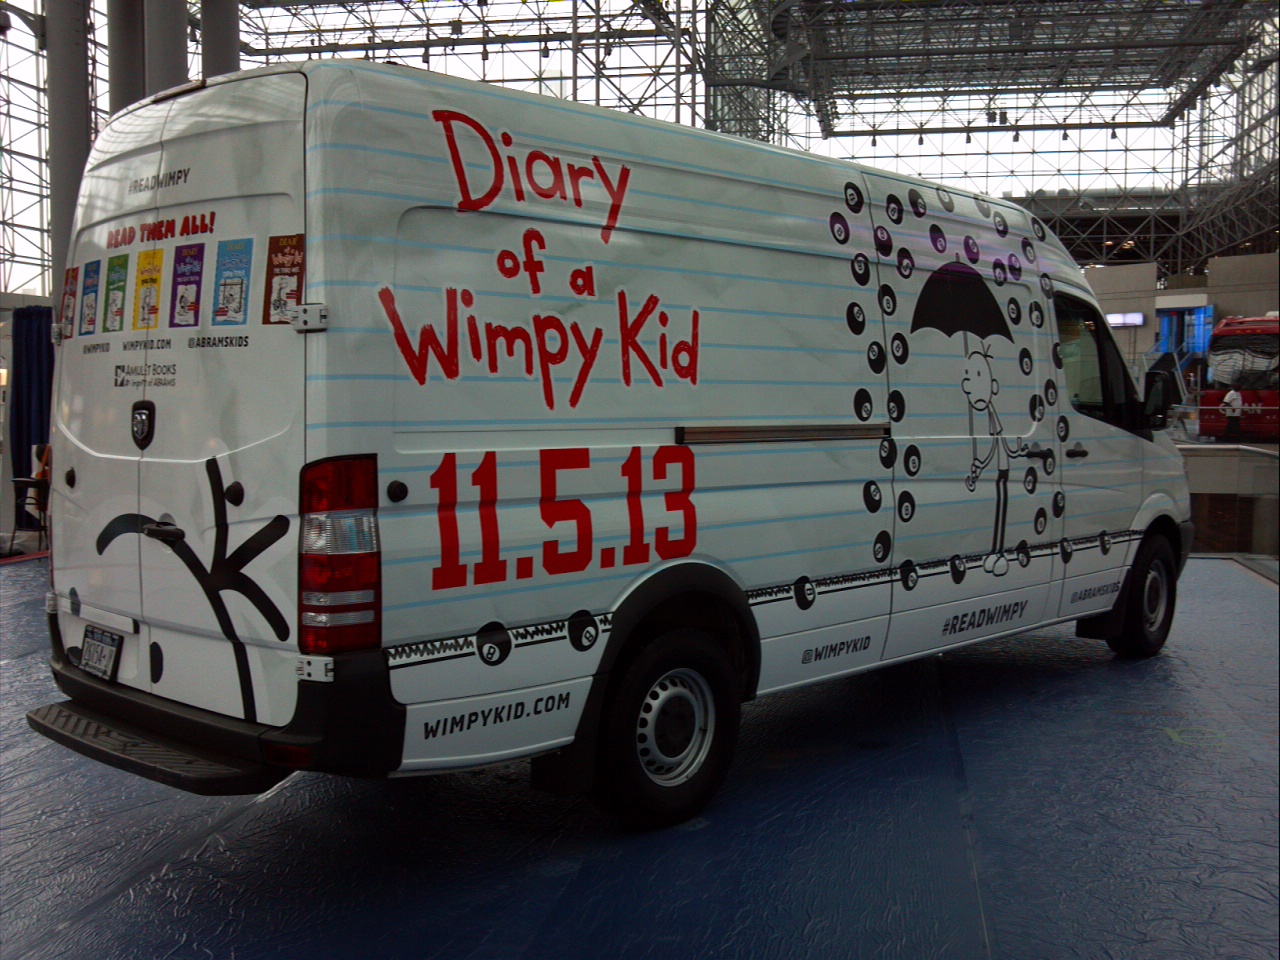 kids will get a sneak peek of diary of a wimpy kid book 8 at six